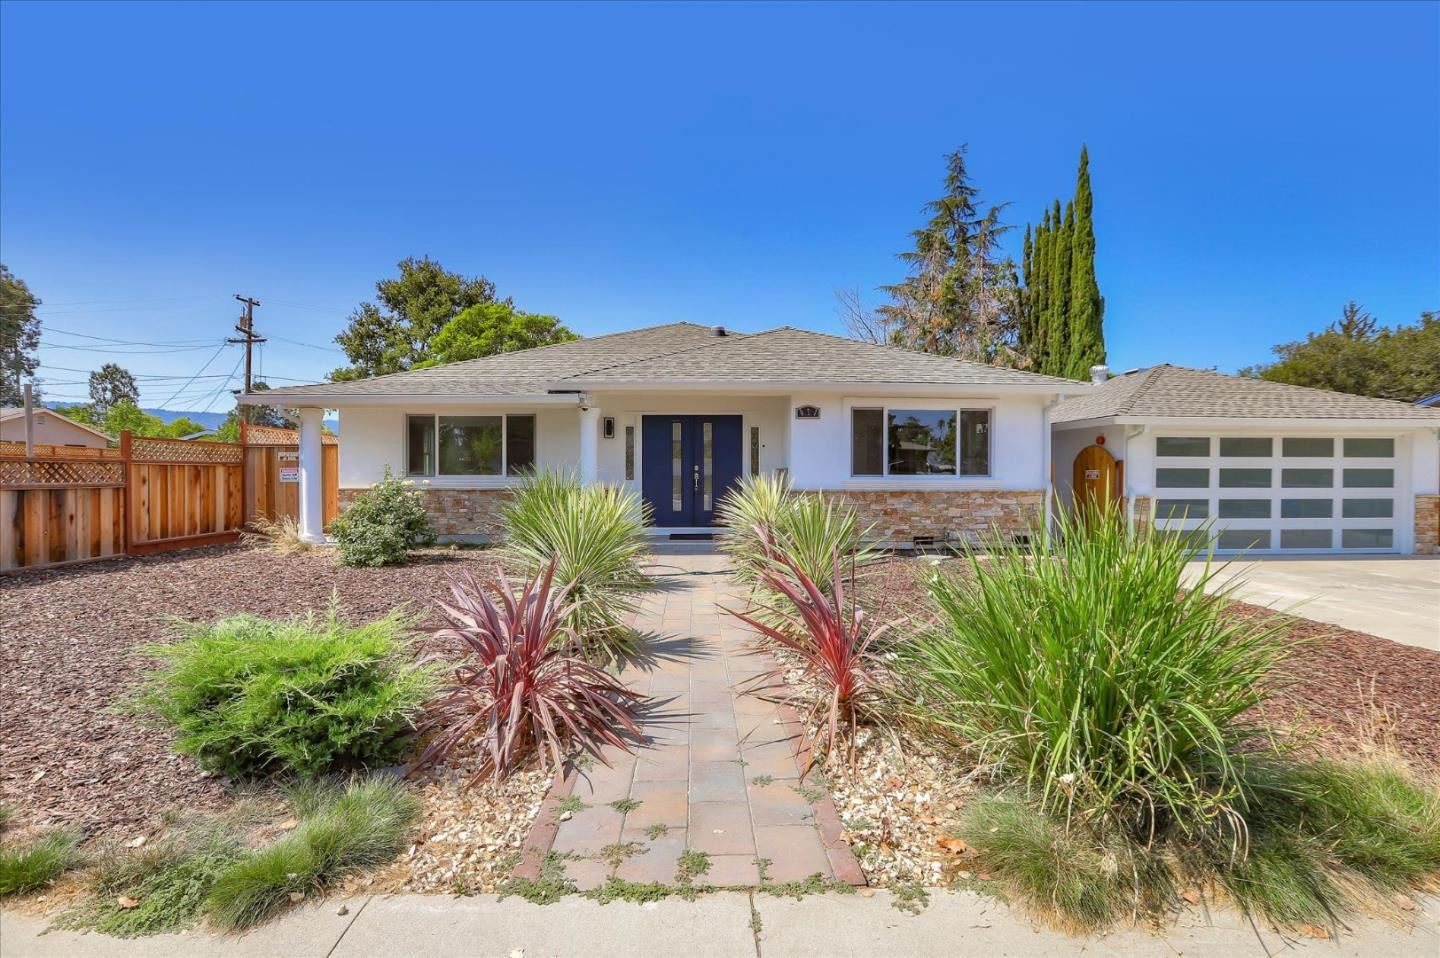 Photo for 871 Virginia AVE, CAMPBELL, CA 95008 (MLS # ML81808641)